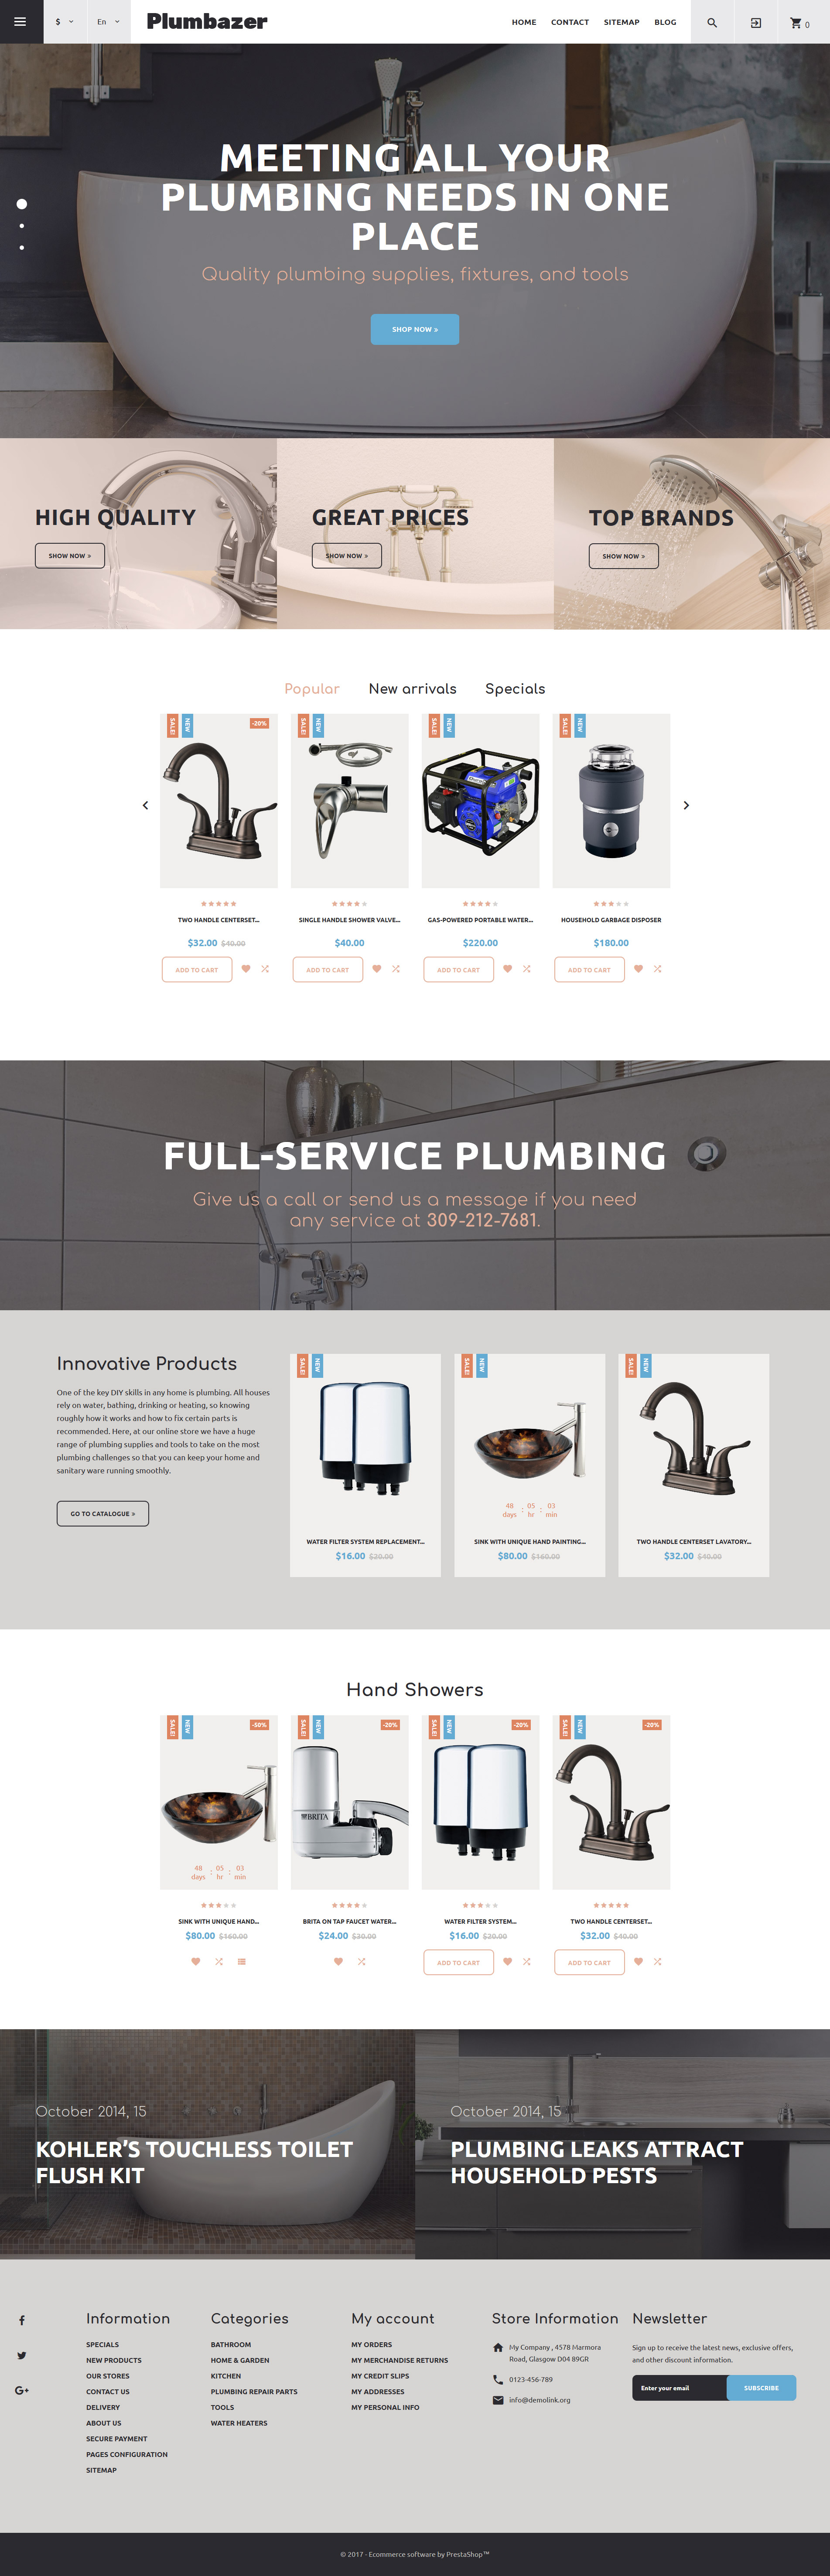 Website Design Template 62302 - supplies company drain heating system installation preventive maintenance repair spanner tools sewer tap faucet sink employment staff master plumber tips hint standard offer experience special expert